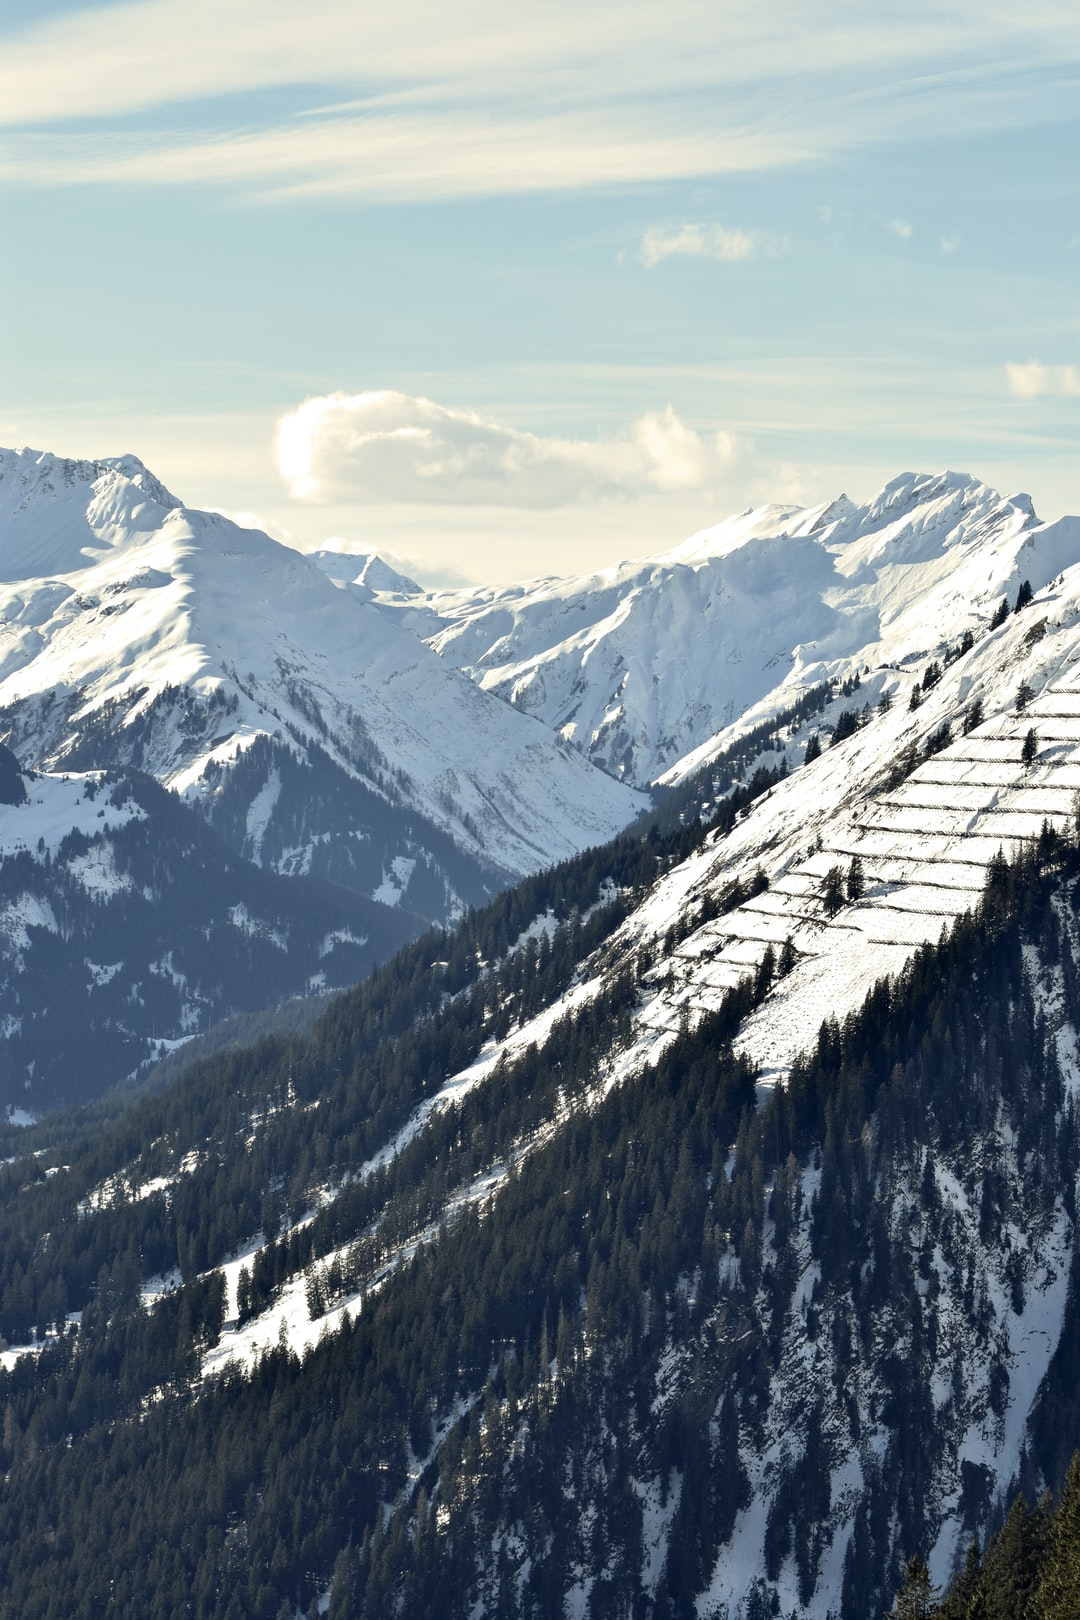 Took this photo on a daytrip to Jöchelspitze in austria while everyone was skiing we were sitting there with a camera